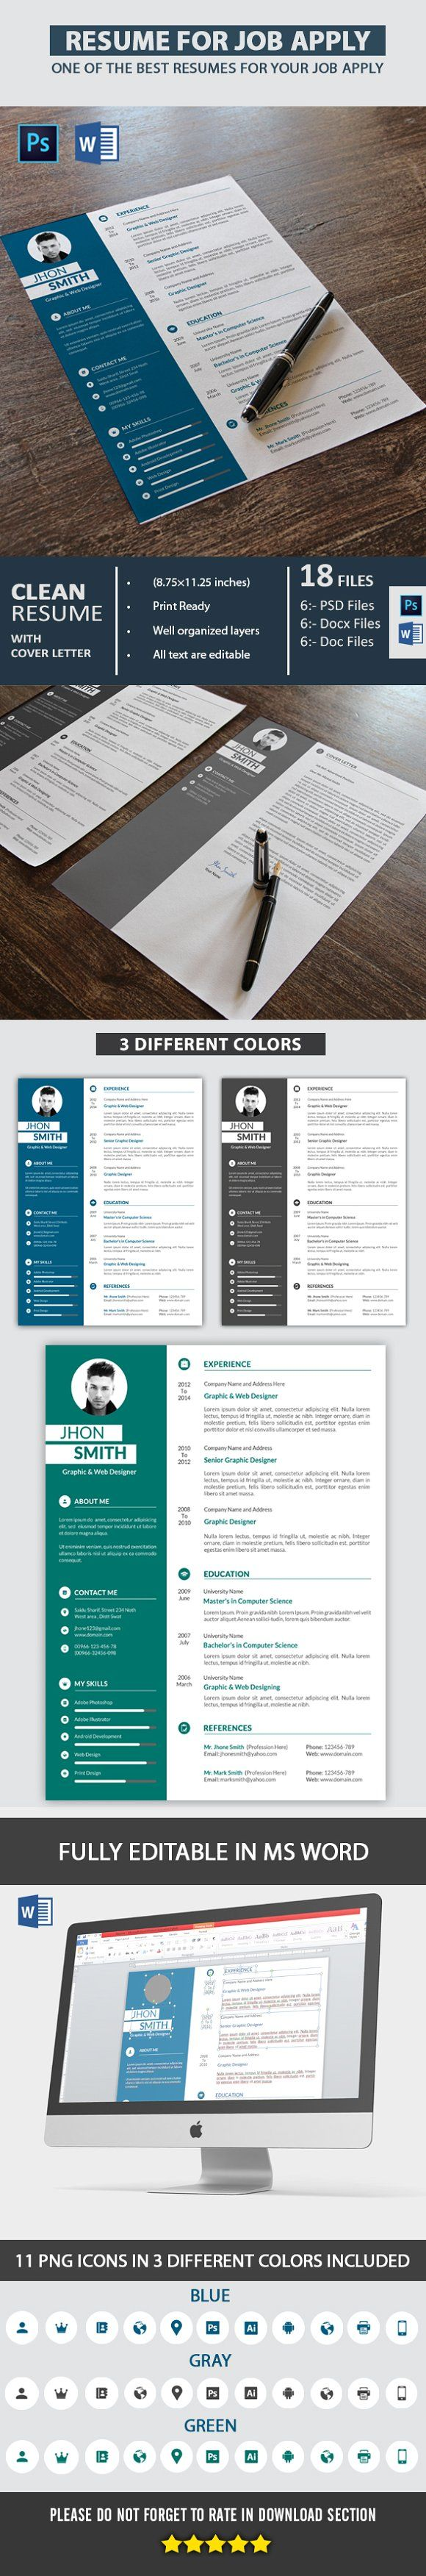 resume and cover letter difference%0A Resume  u     Cover Letter by Mehrographix on